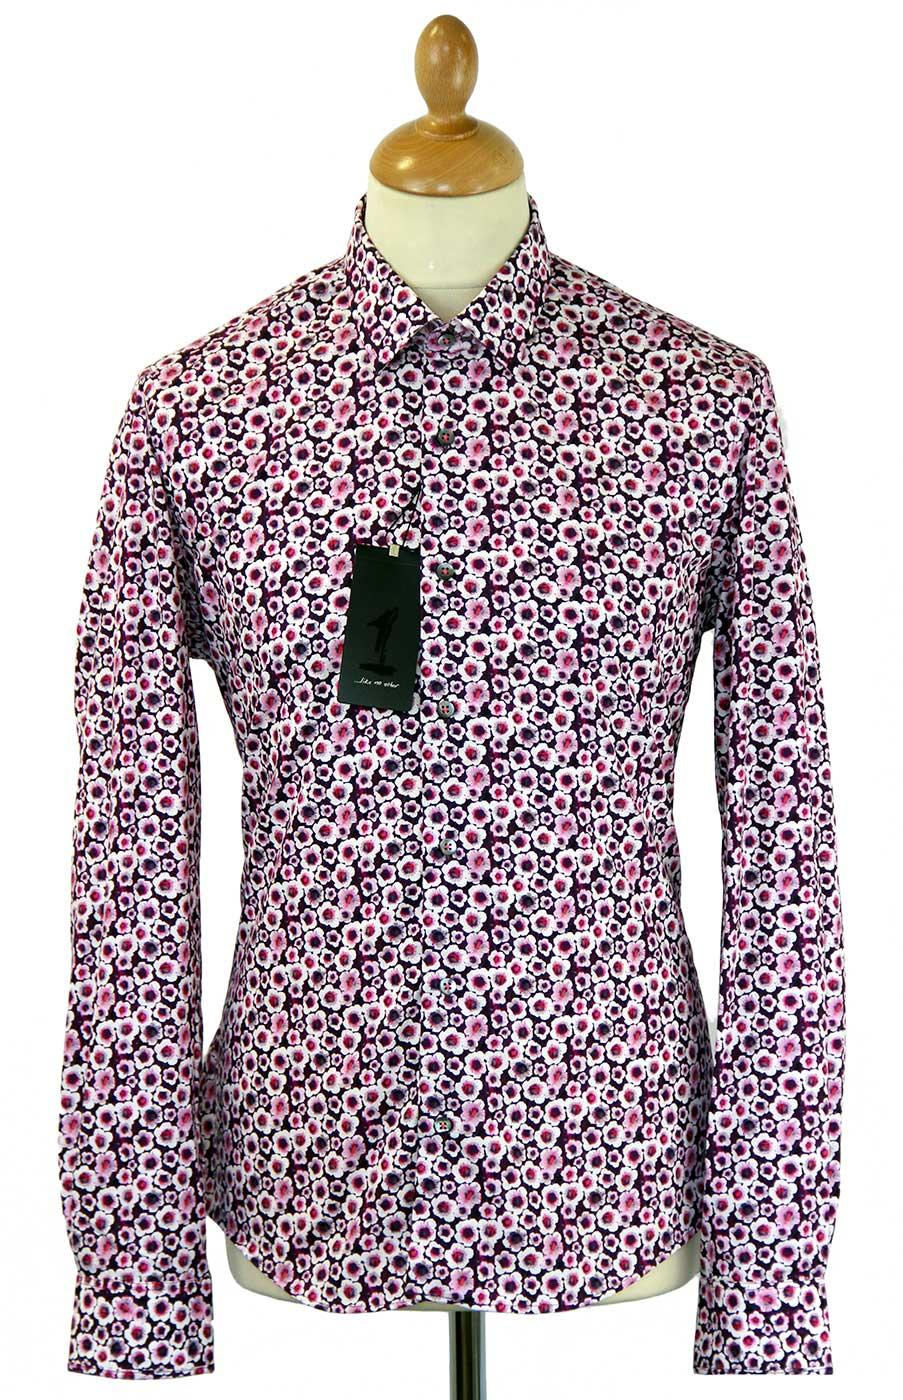 Corms 1 LIKE NO OTHER Retro 60s Floral Print Shirt